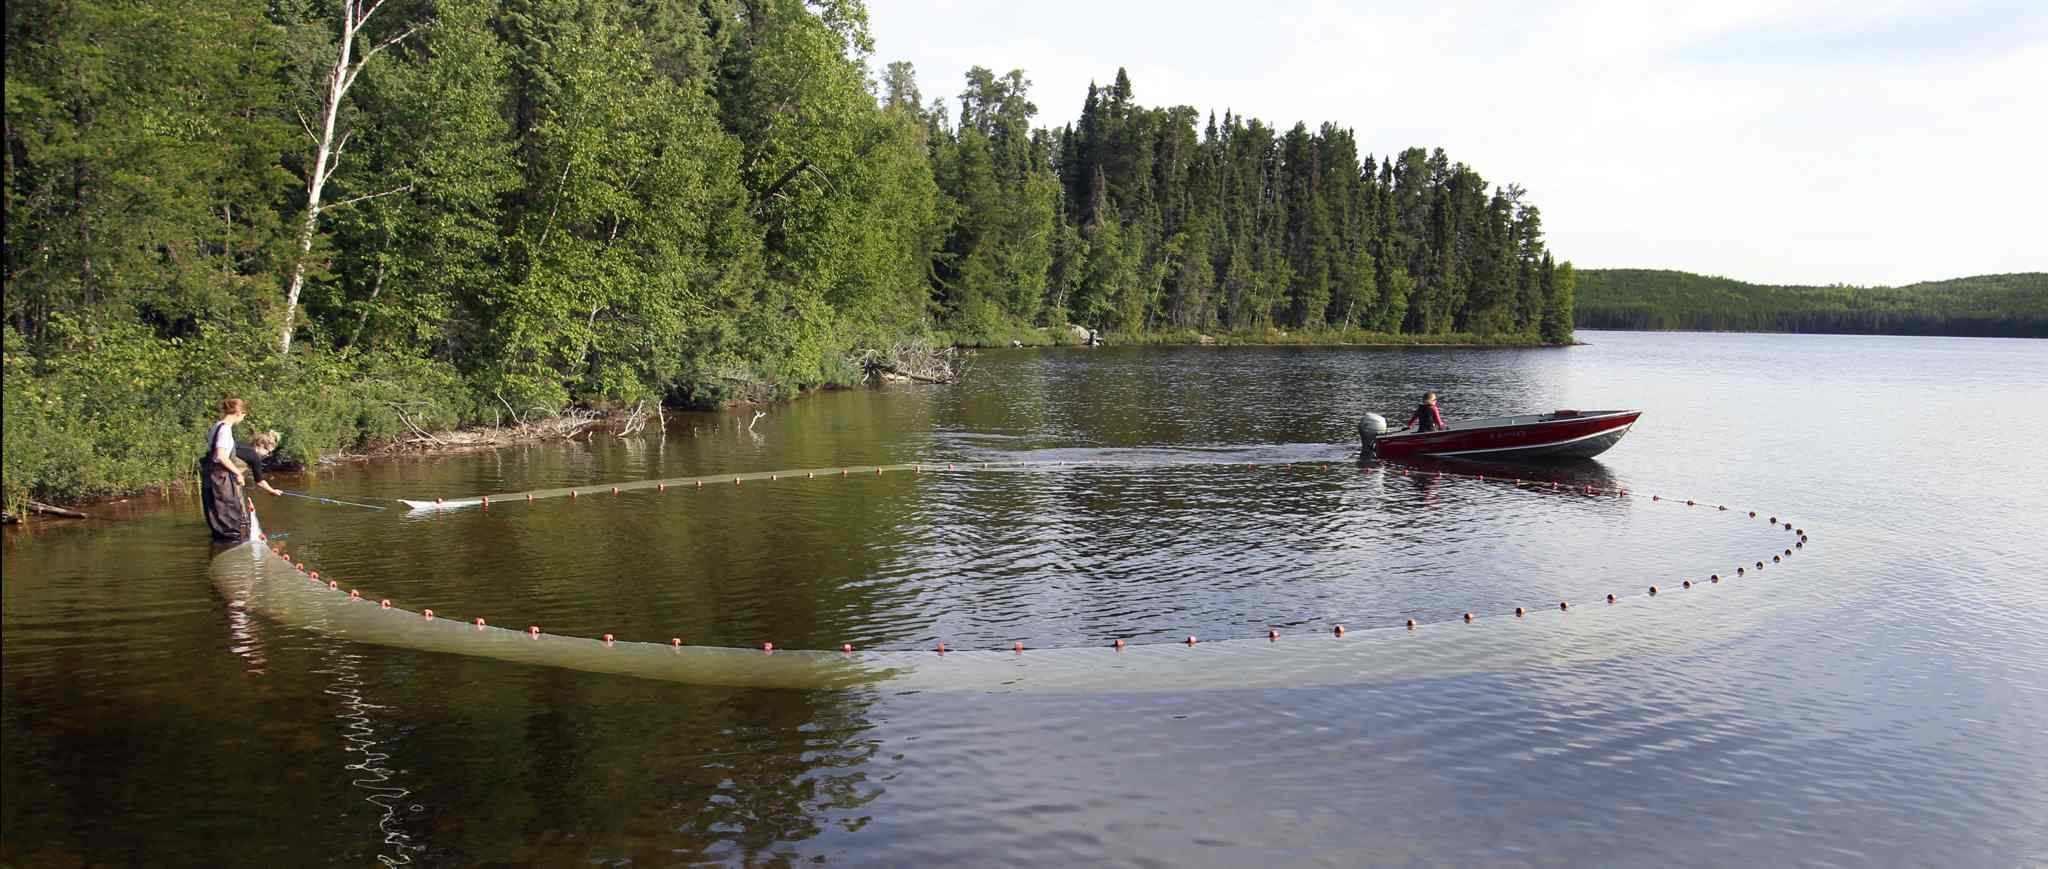 Researchers use a seine net to catch fish on Lake # 239 part of the Experimental Lakes Area.